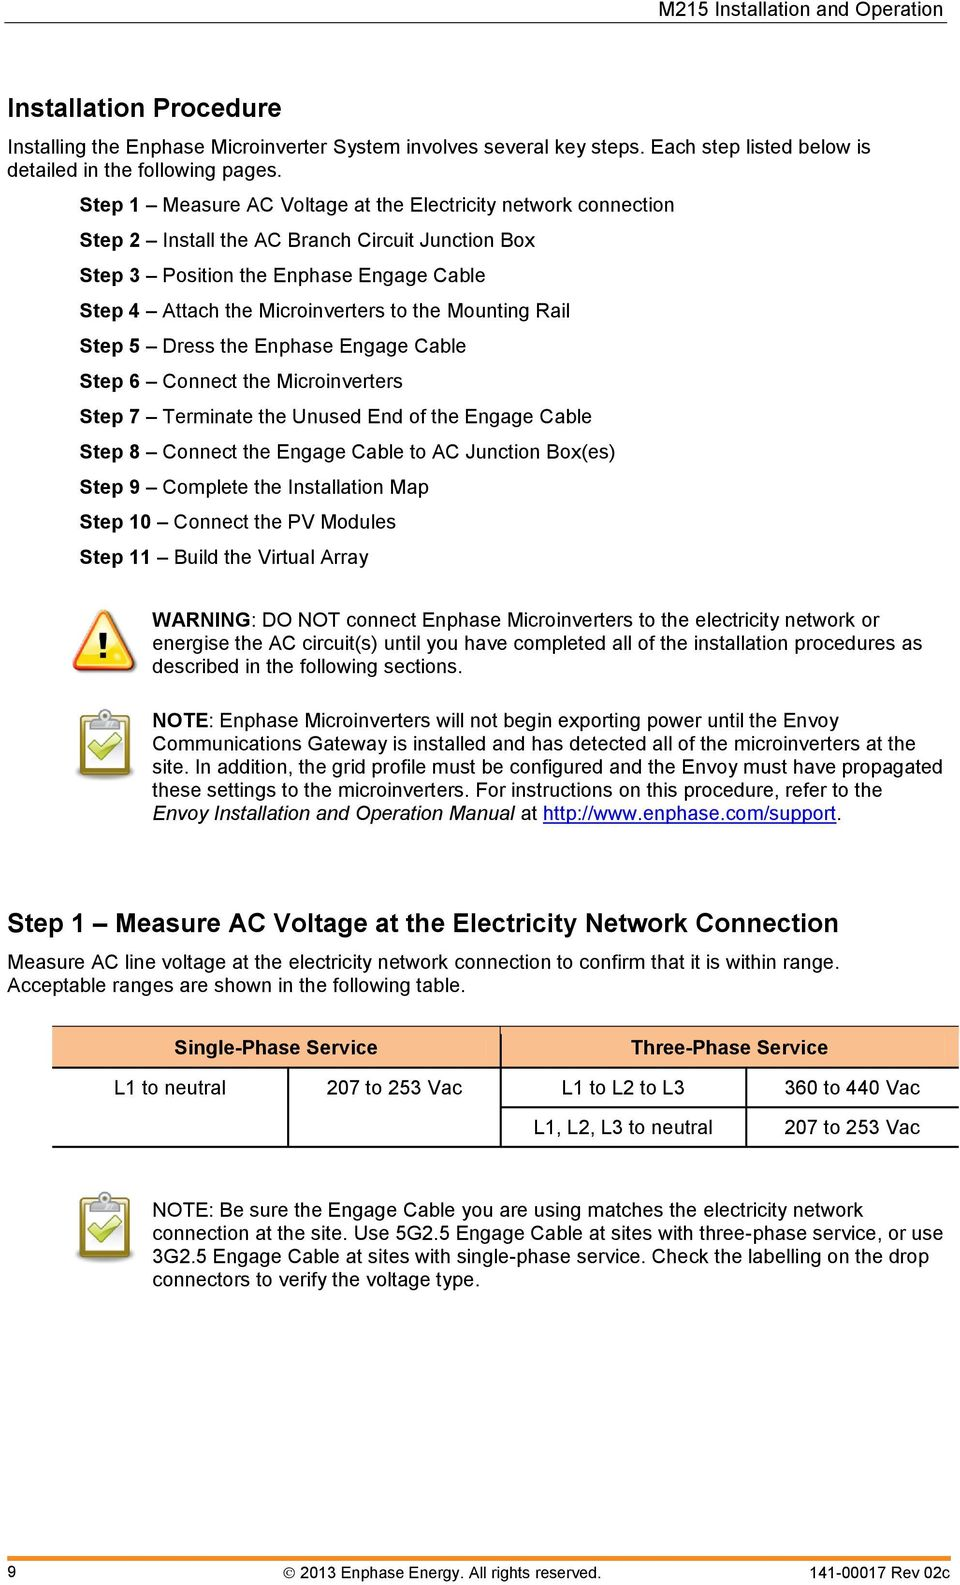 Enphase Microinverter Model M215 - PDF on battery wiring diagram, shurflo wiring diagram, single line wiring diagram, emerson wiring diagram, ge wiring diagram, solaredge wiring diagram, siemens wiring diagram, 3 phase electrical wiring diagram, single phase wiring diagram, delta wiring diagram, samsung wiring diagram, magnetek wiring diagram, hyundai wiring diagram, solar panel wiring diagram, solar system wiring diagram, evergreen wiring diagram, trojan wiring diagram, square d wiring diagram, micro inverter wiring diagram, mitsubishi wiring diagram,